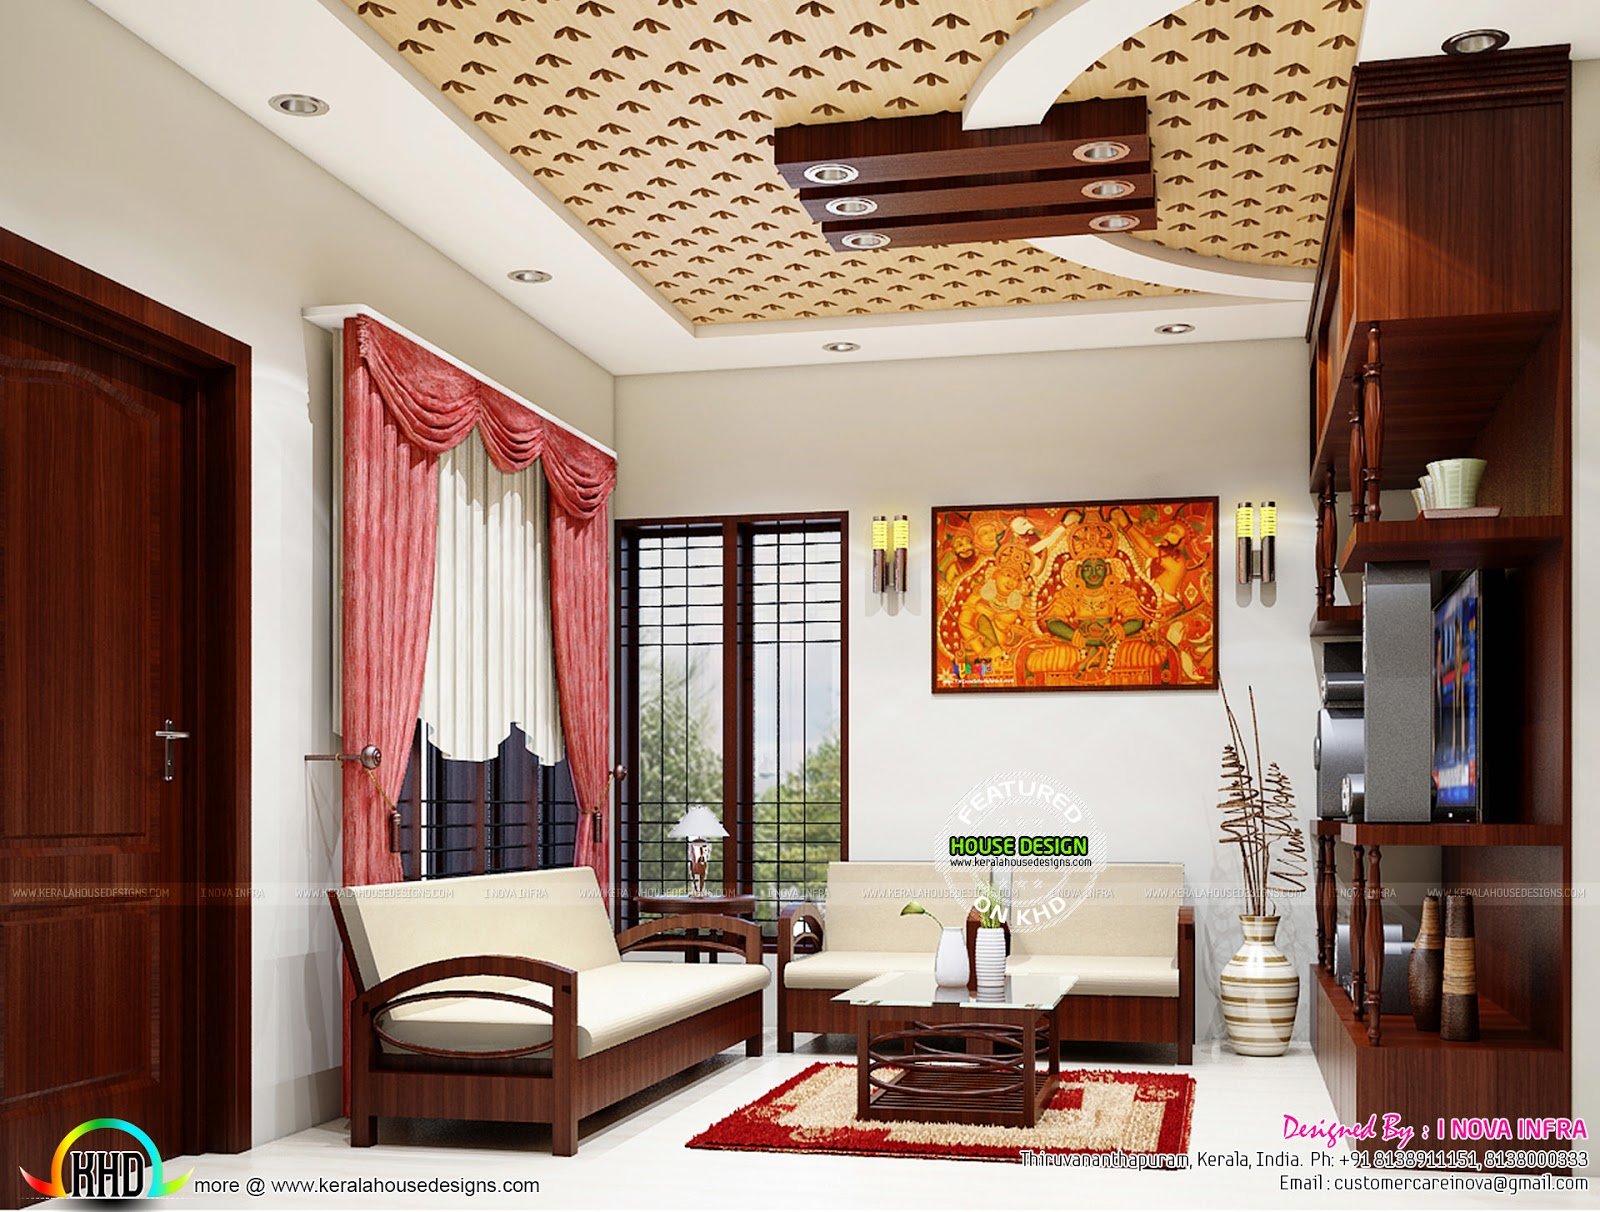 Kerala traditional interiors kerala home design and for Design from home